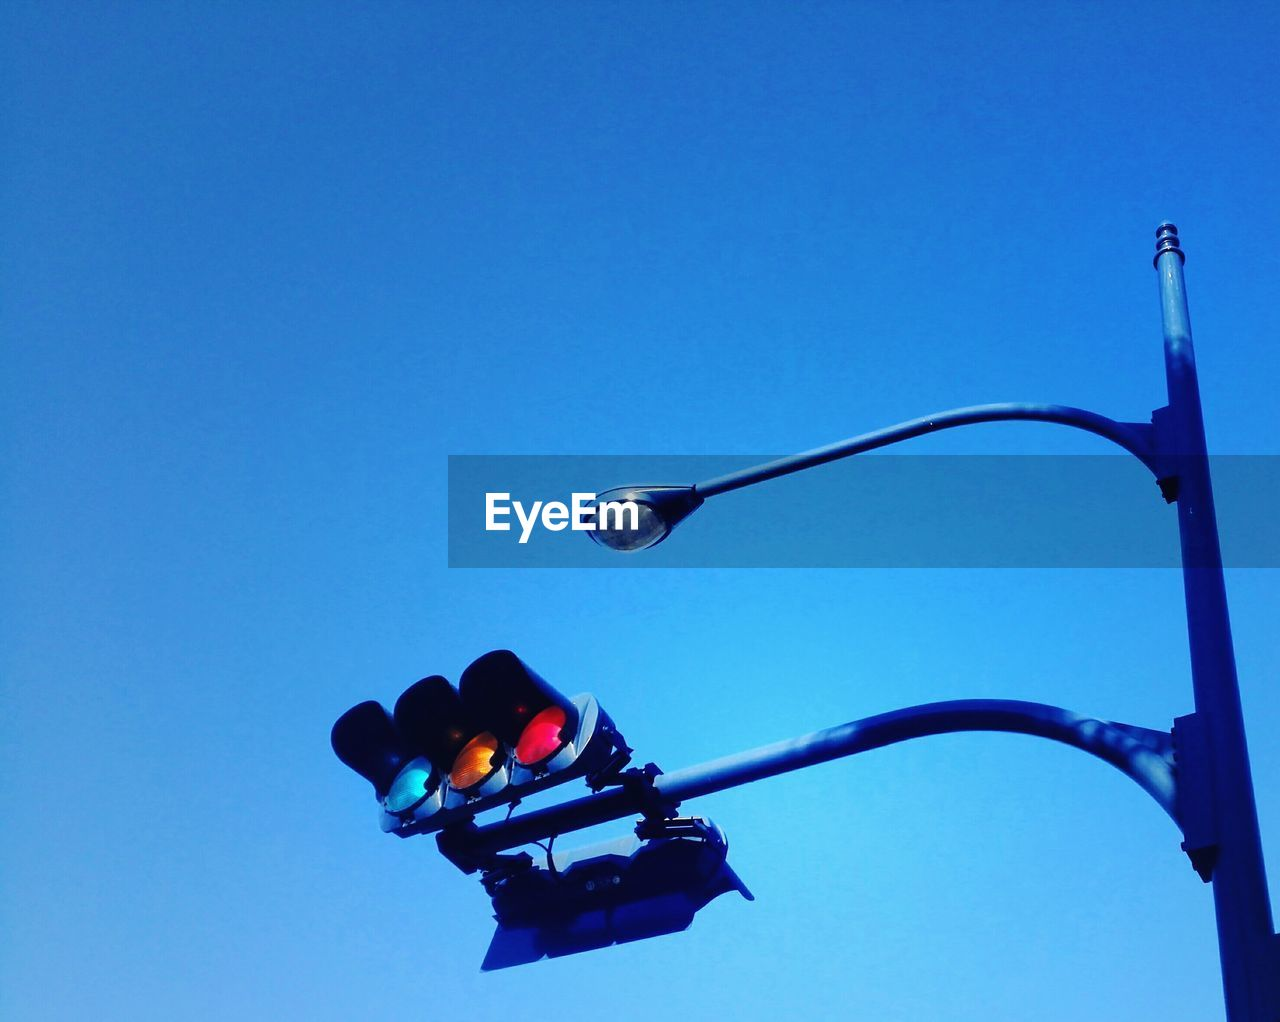 blue, sky, clear sky, copy space, low angle view, nature, light, lighting equipment, no people, street light, day, stoplight, road signal, outdoors, street, red light, electric light, illuminated, sign, transportation